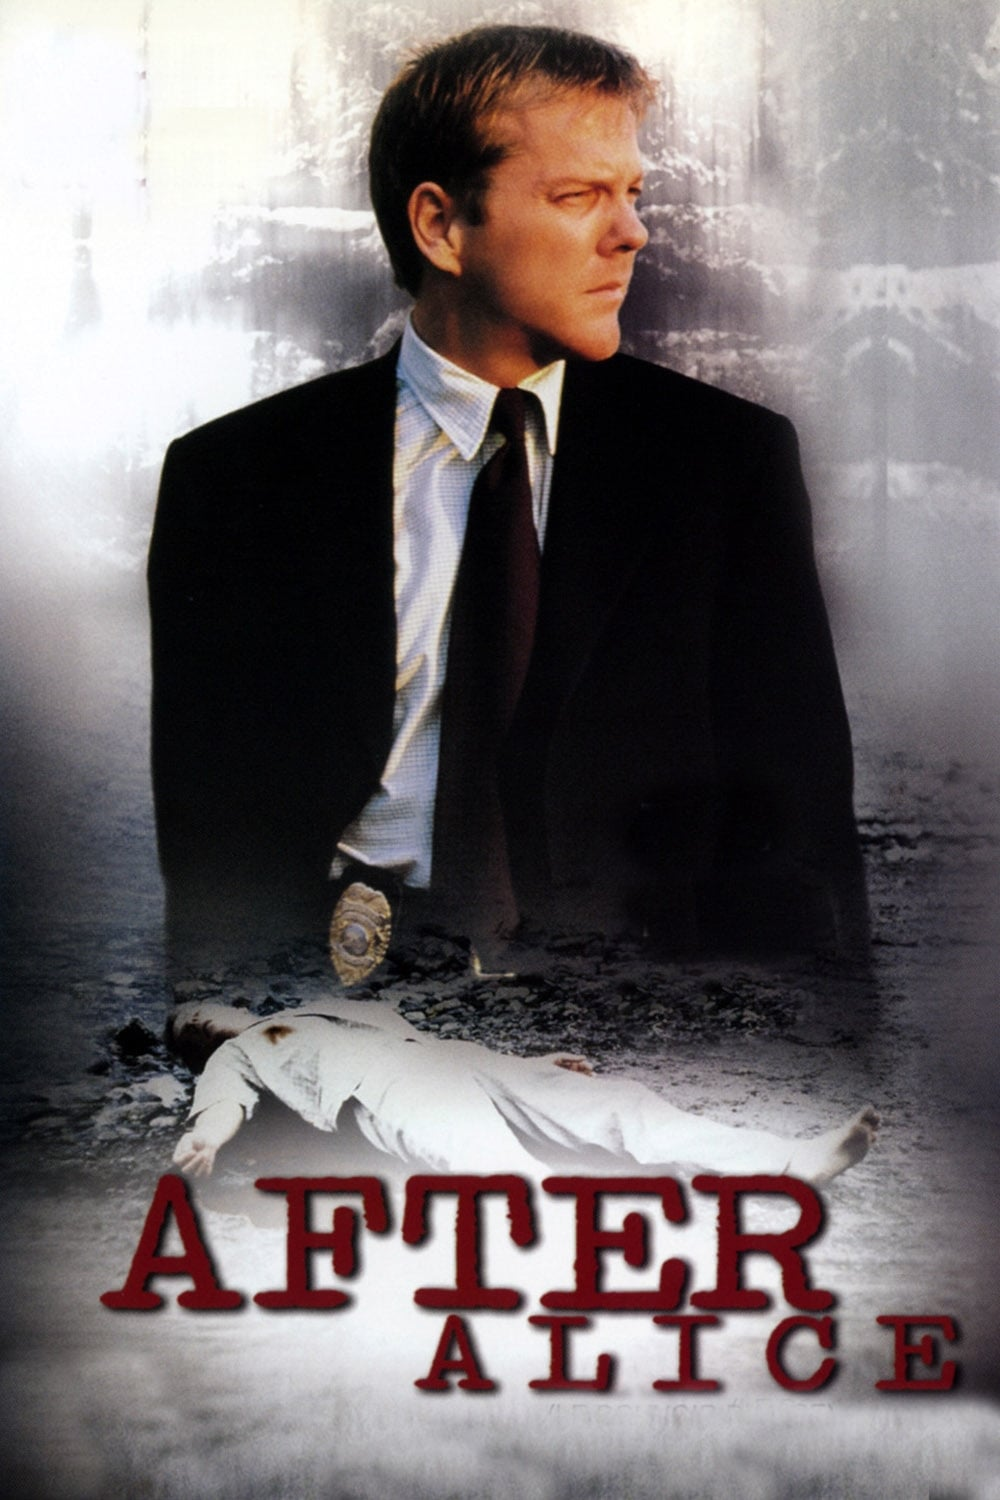 After Alice (1999)